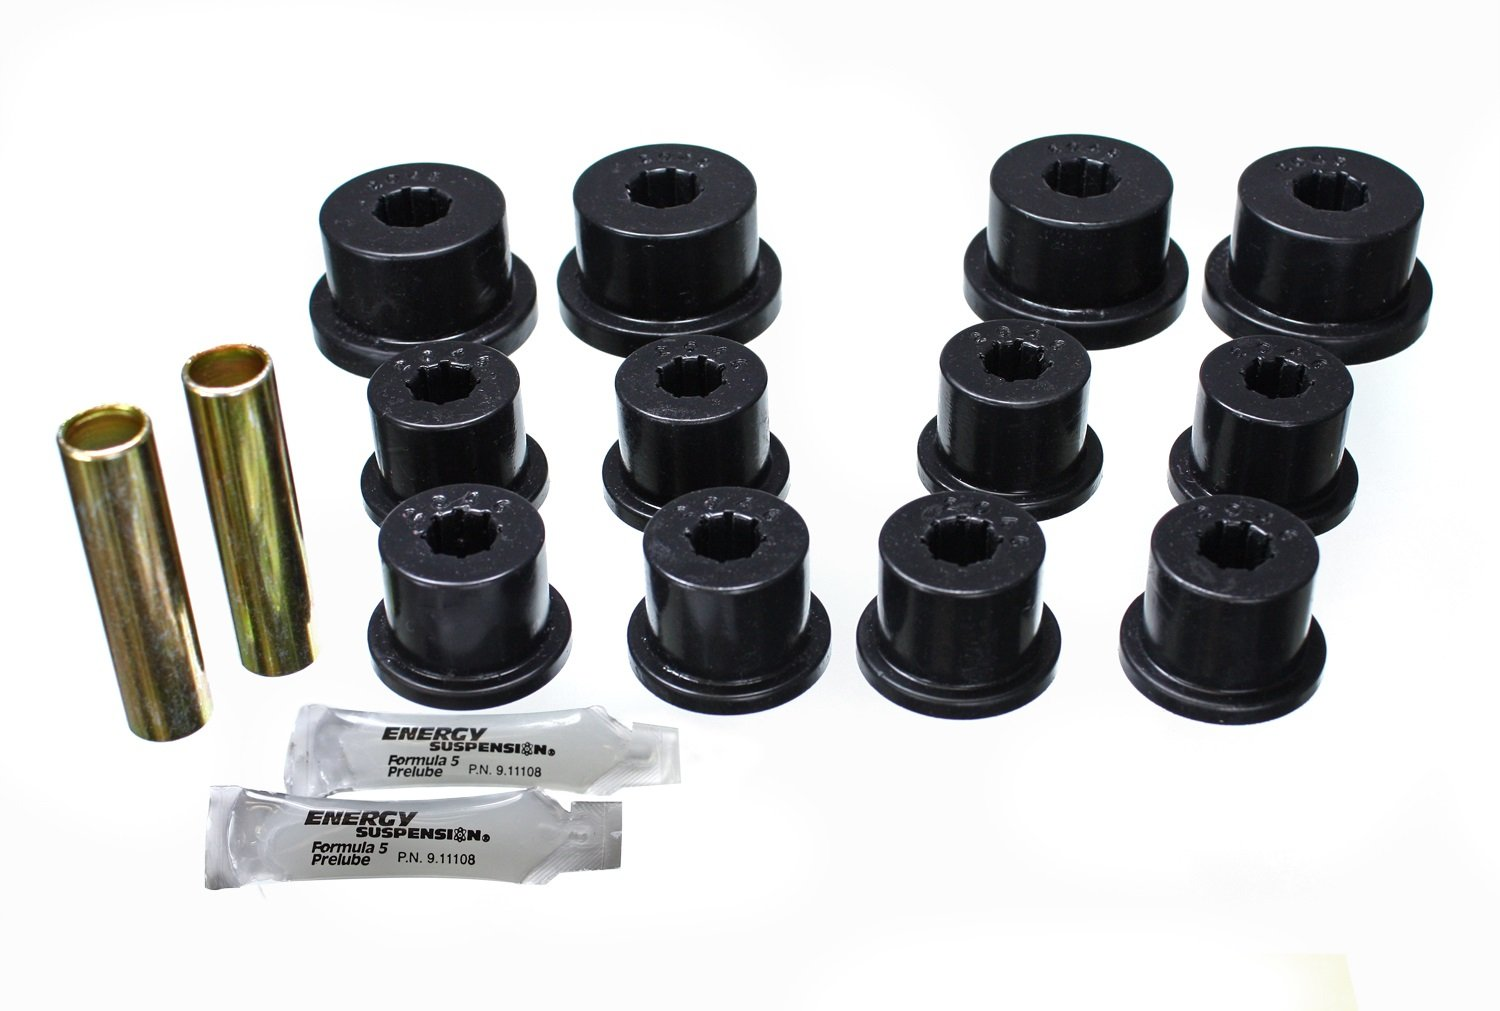 Energy Suspension 1.2101G O.E.M. Spring Bushing for Suzuki